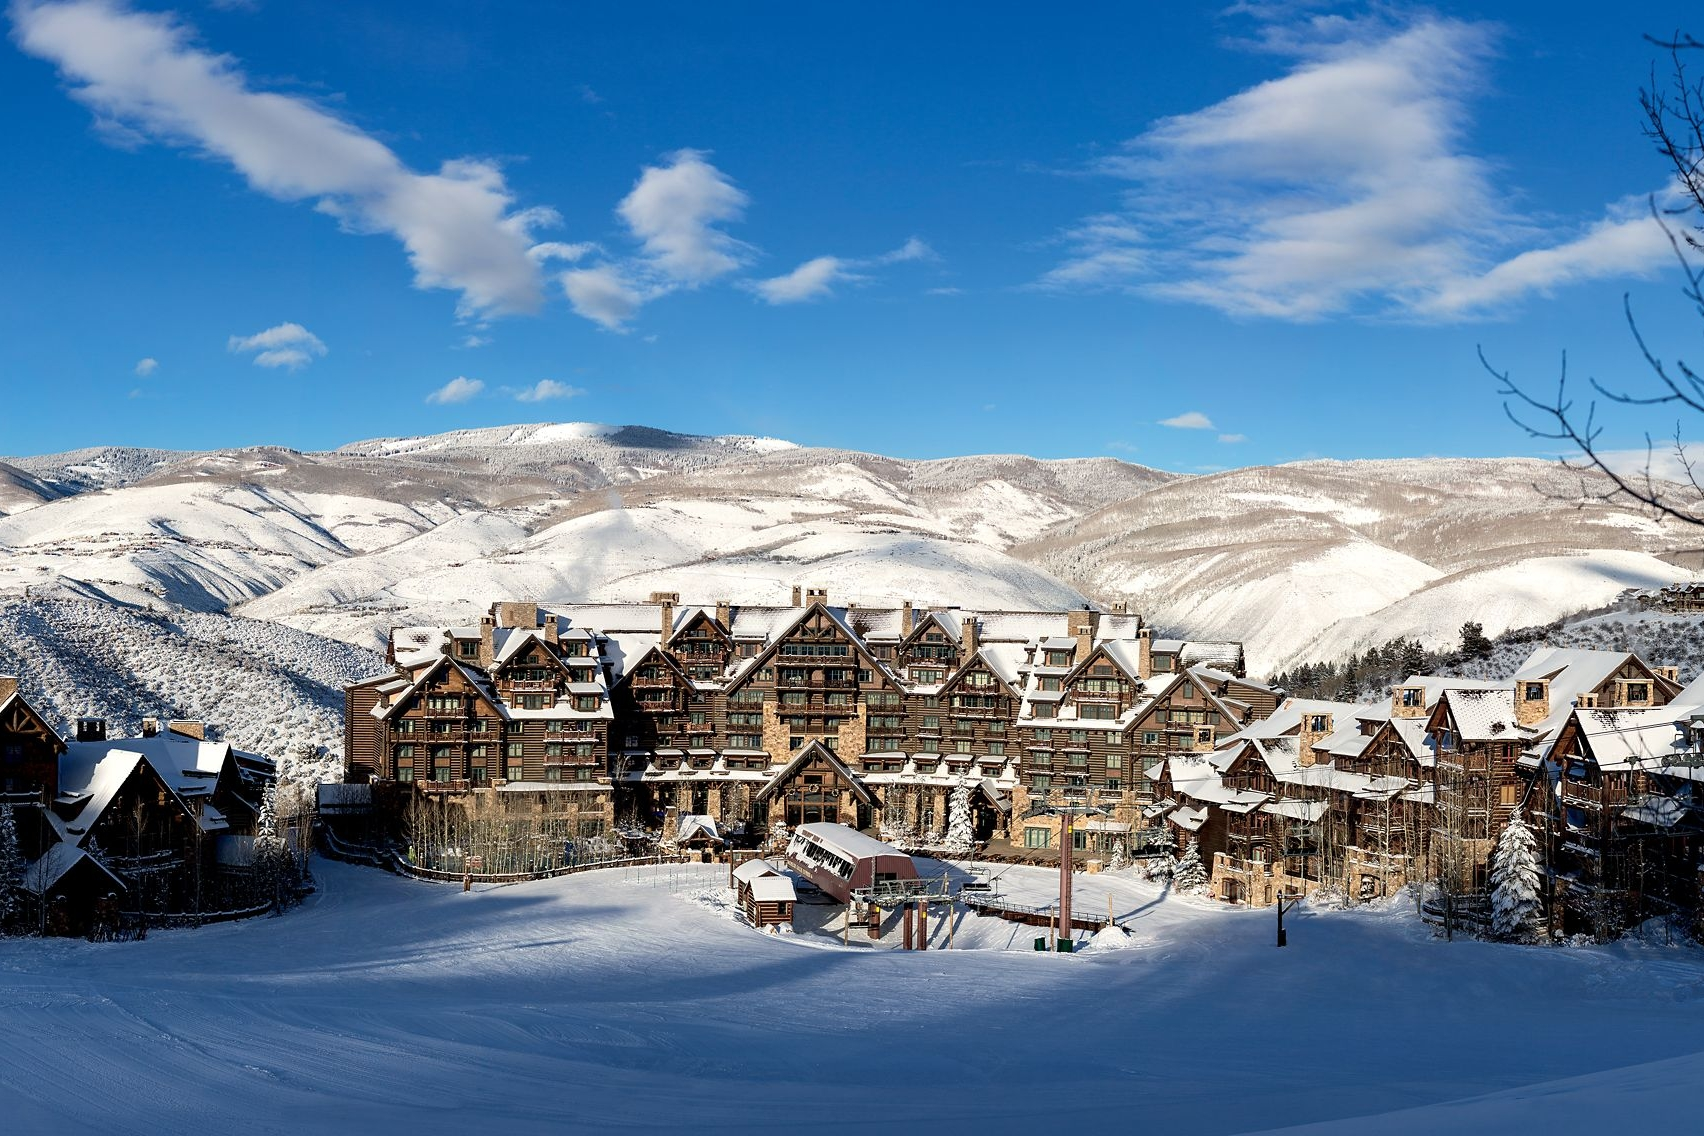 The Ritz Bachelor Gulch - BEAVER CREEK, CO